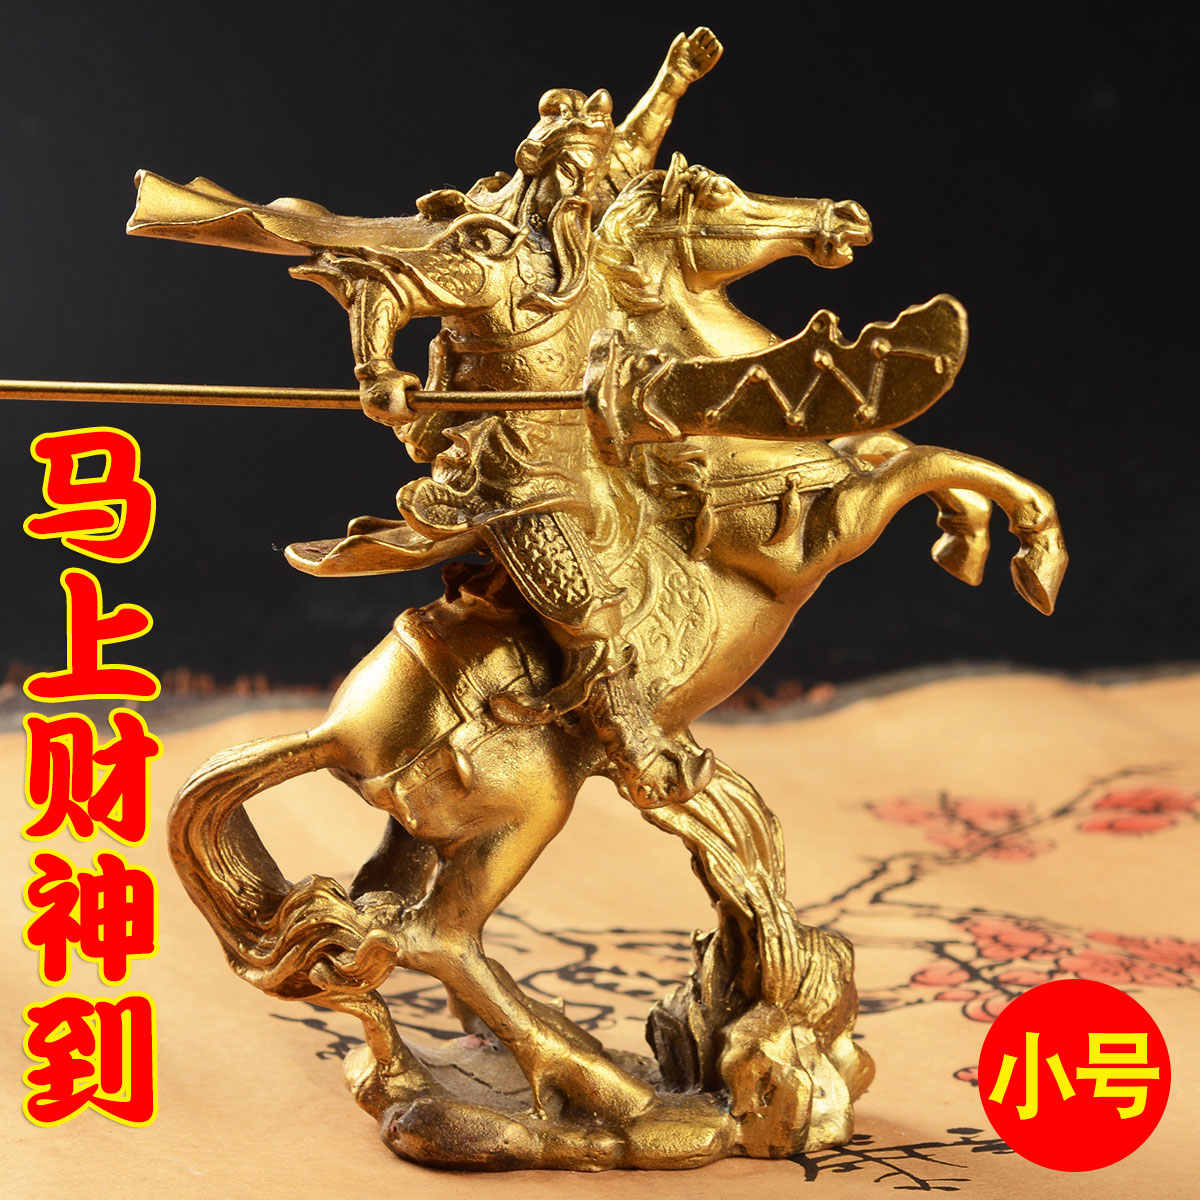 Copper statue of Guan Yu, ornaments, Guan Gong, the God of wealth, statues, Buddha figurine, 2 size optional